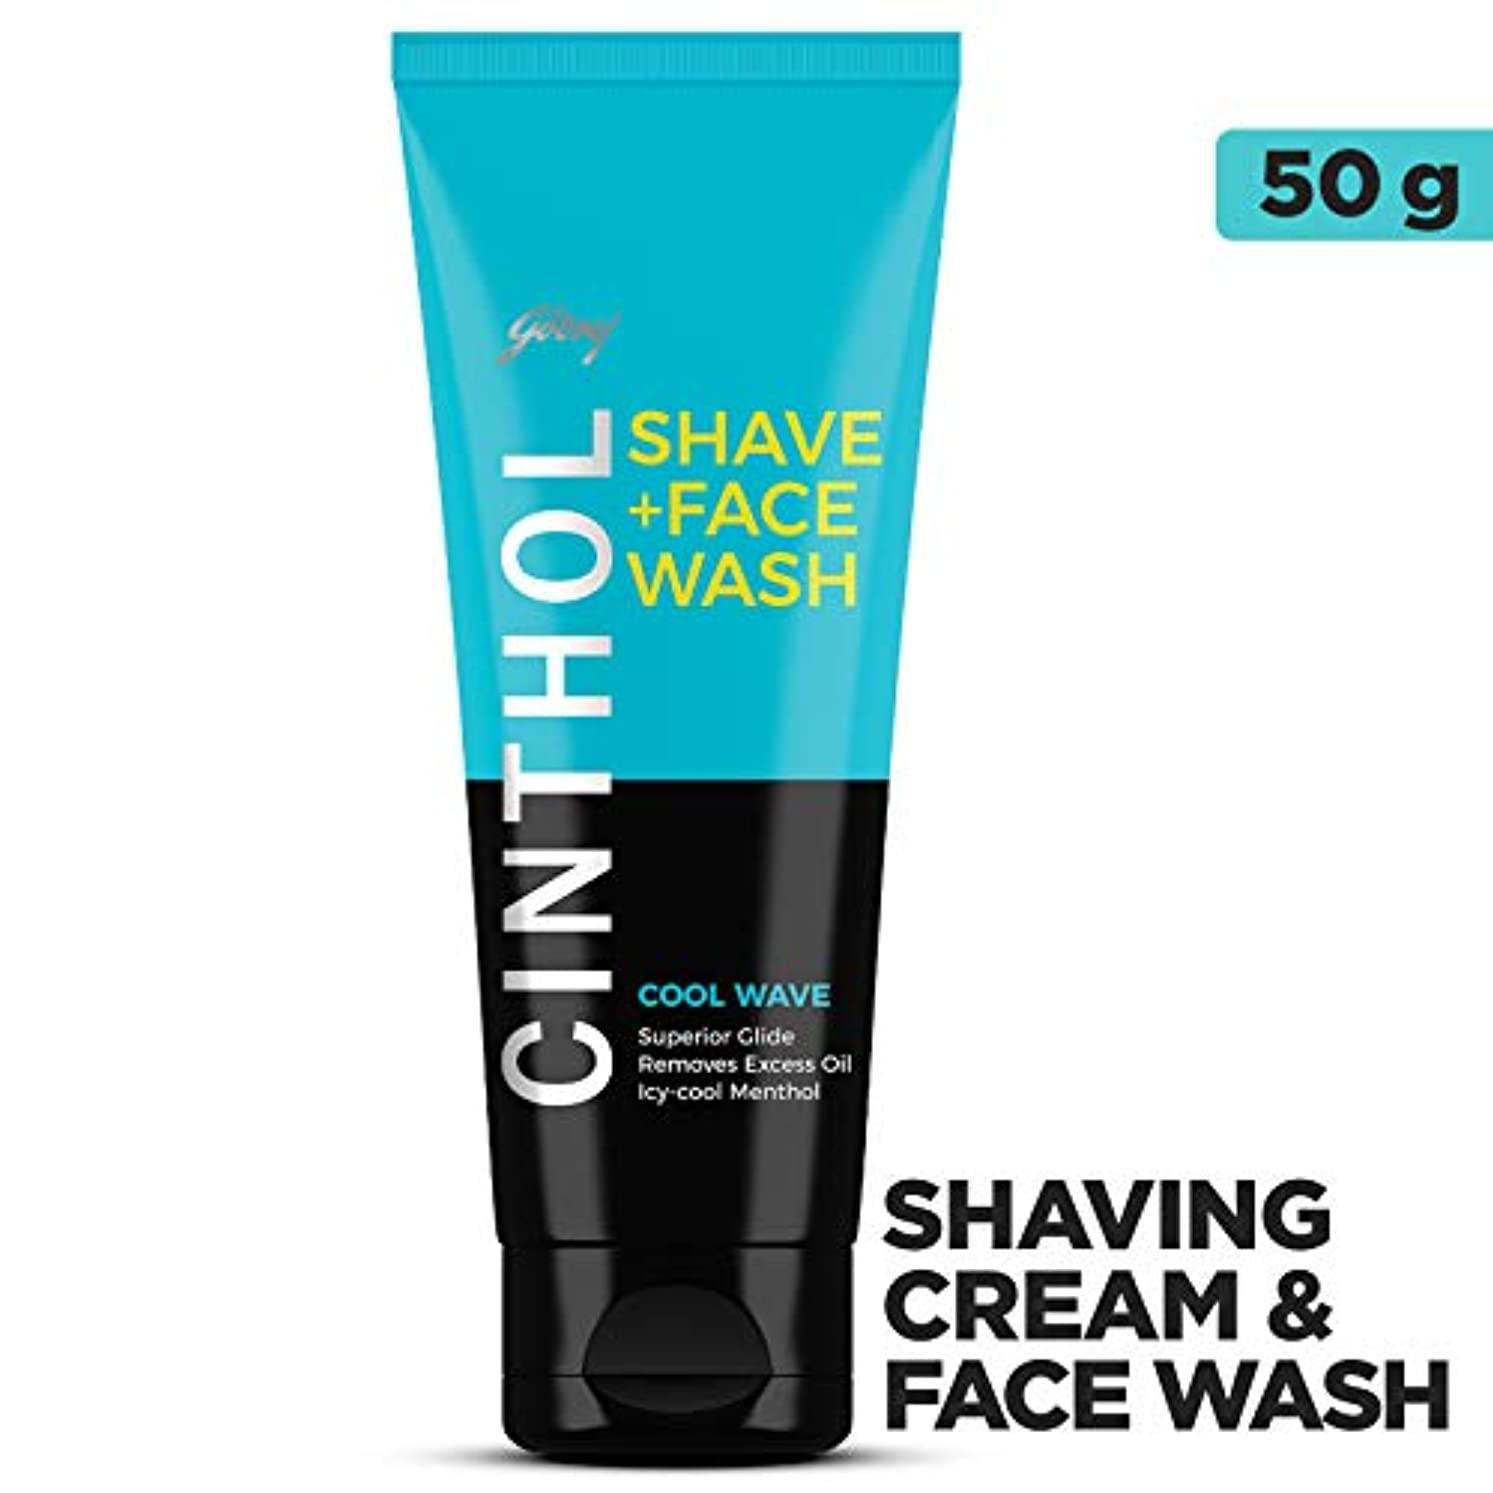 Cinthol Shaving + Face Wash, Cool Wave, 50g